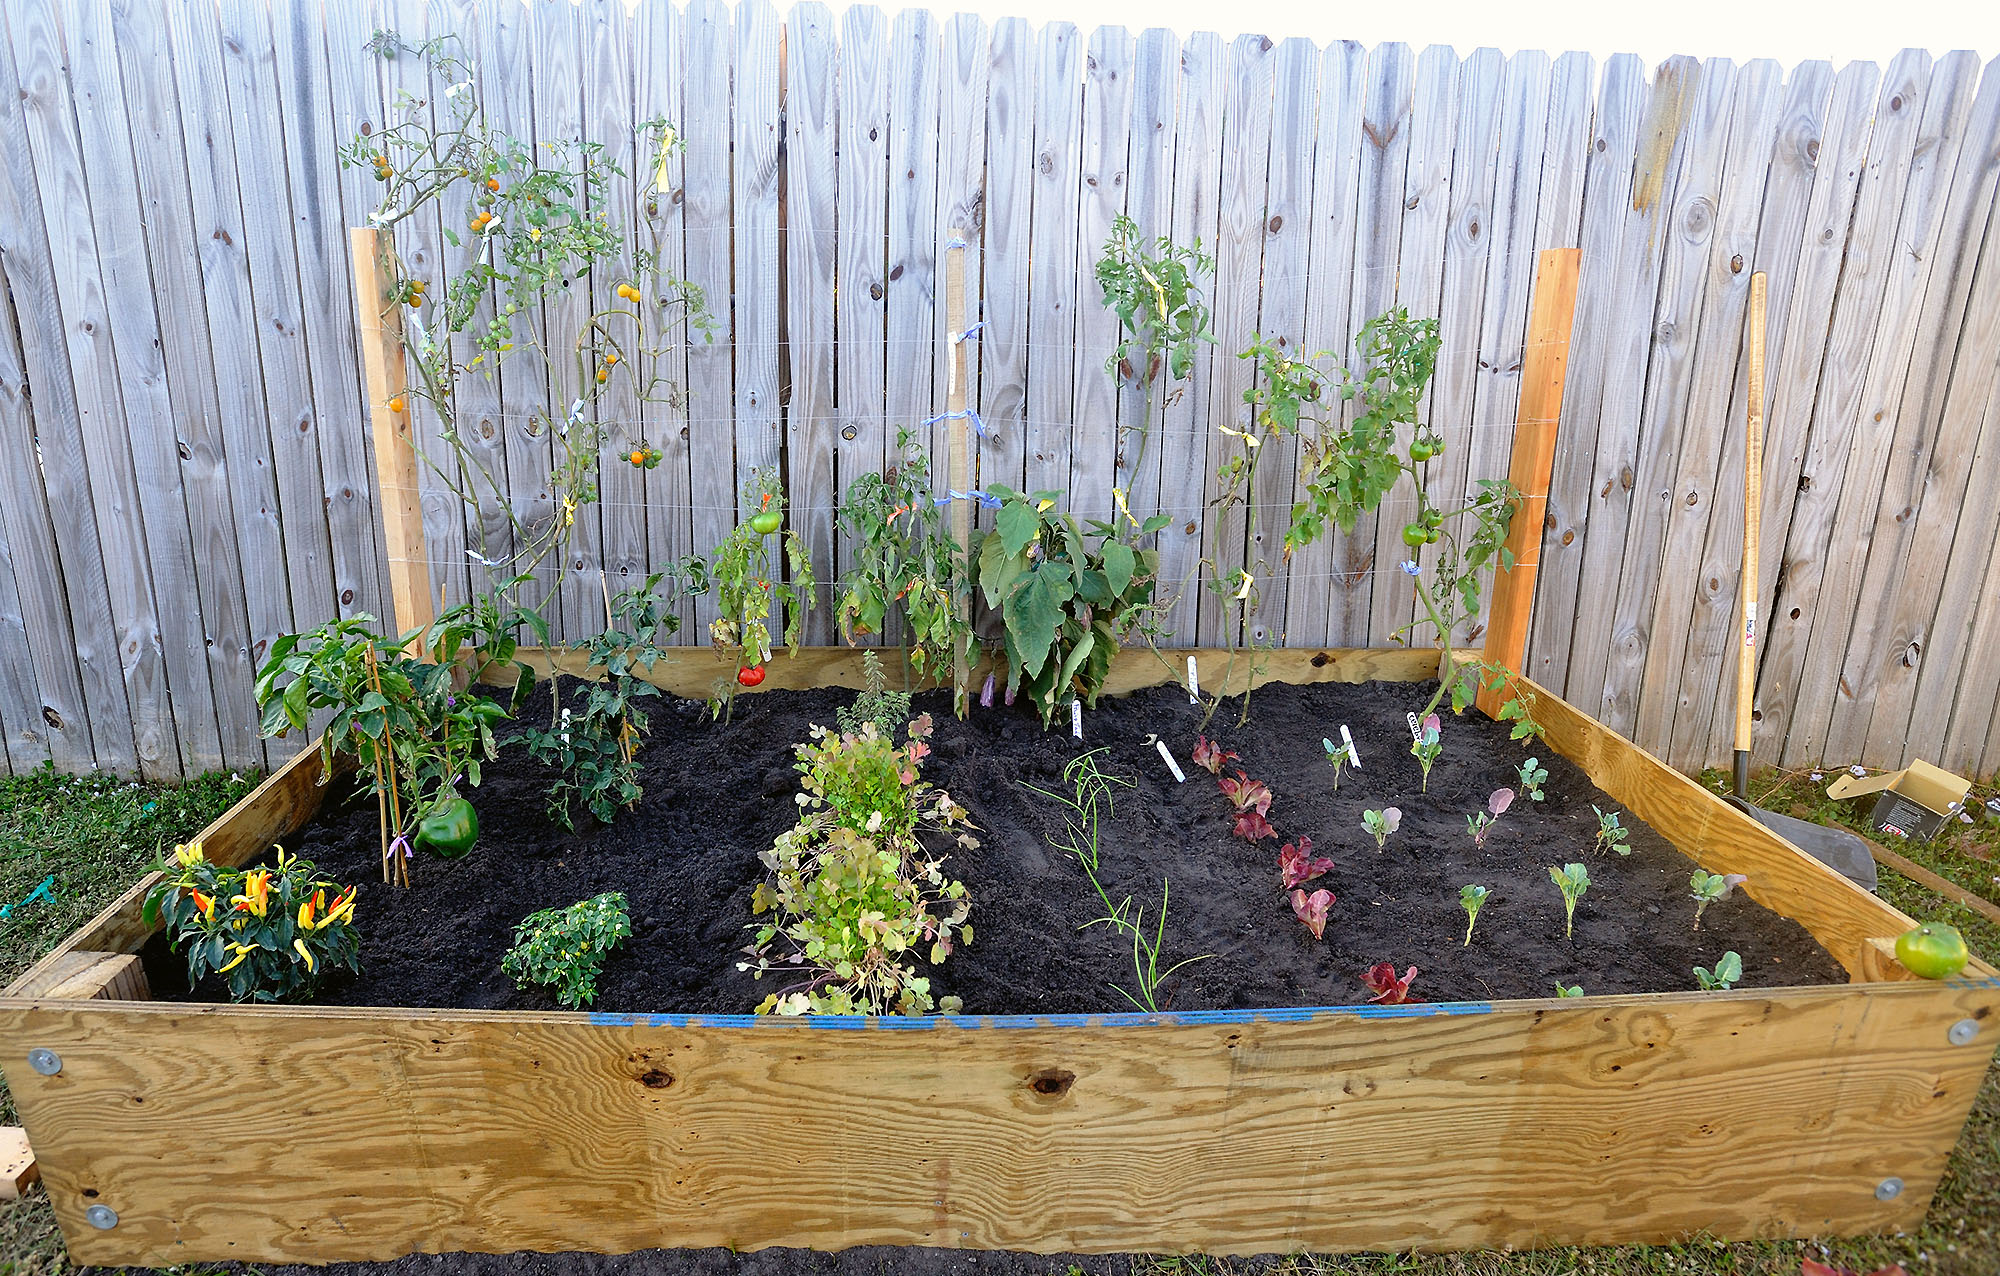 Learning from your Mistakes: A Gardening Story